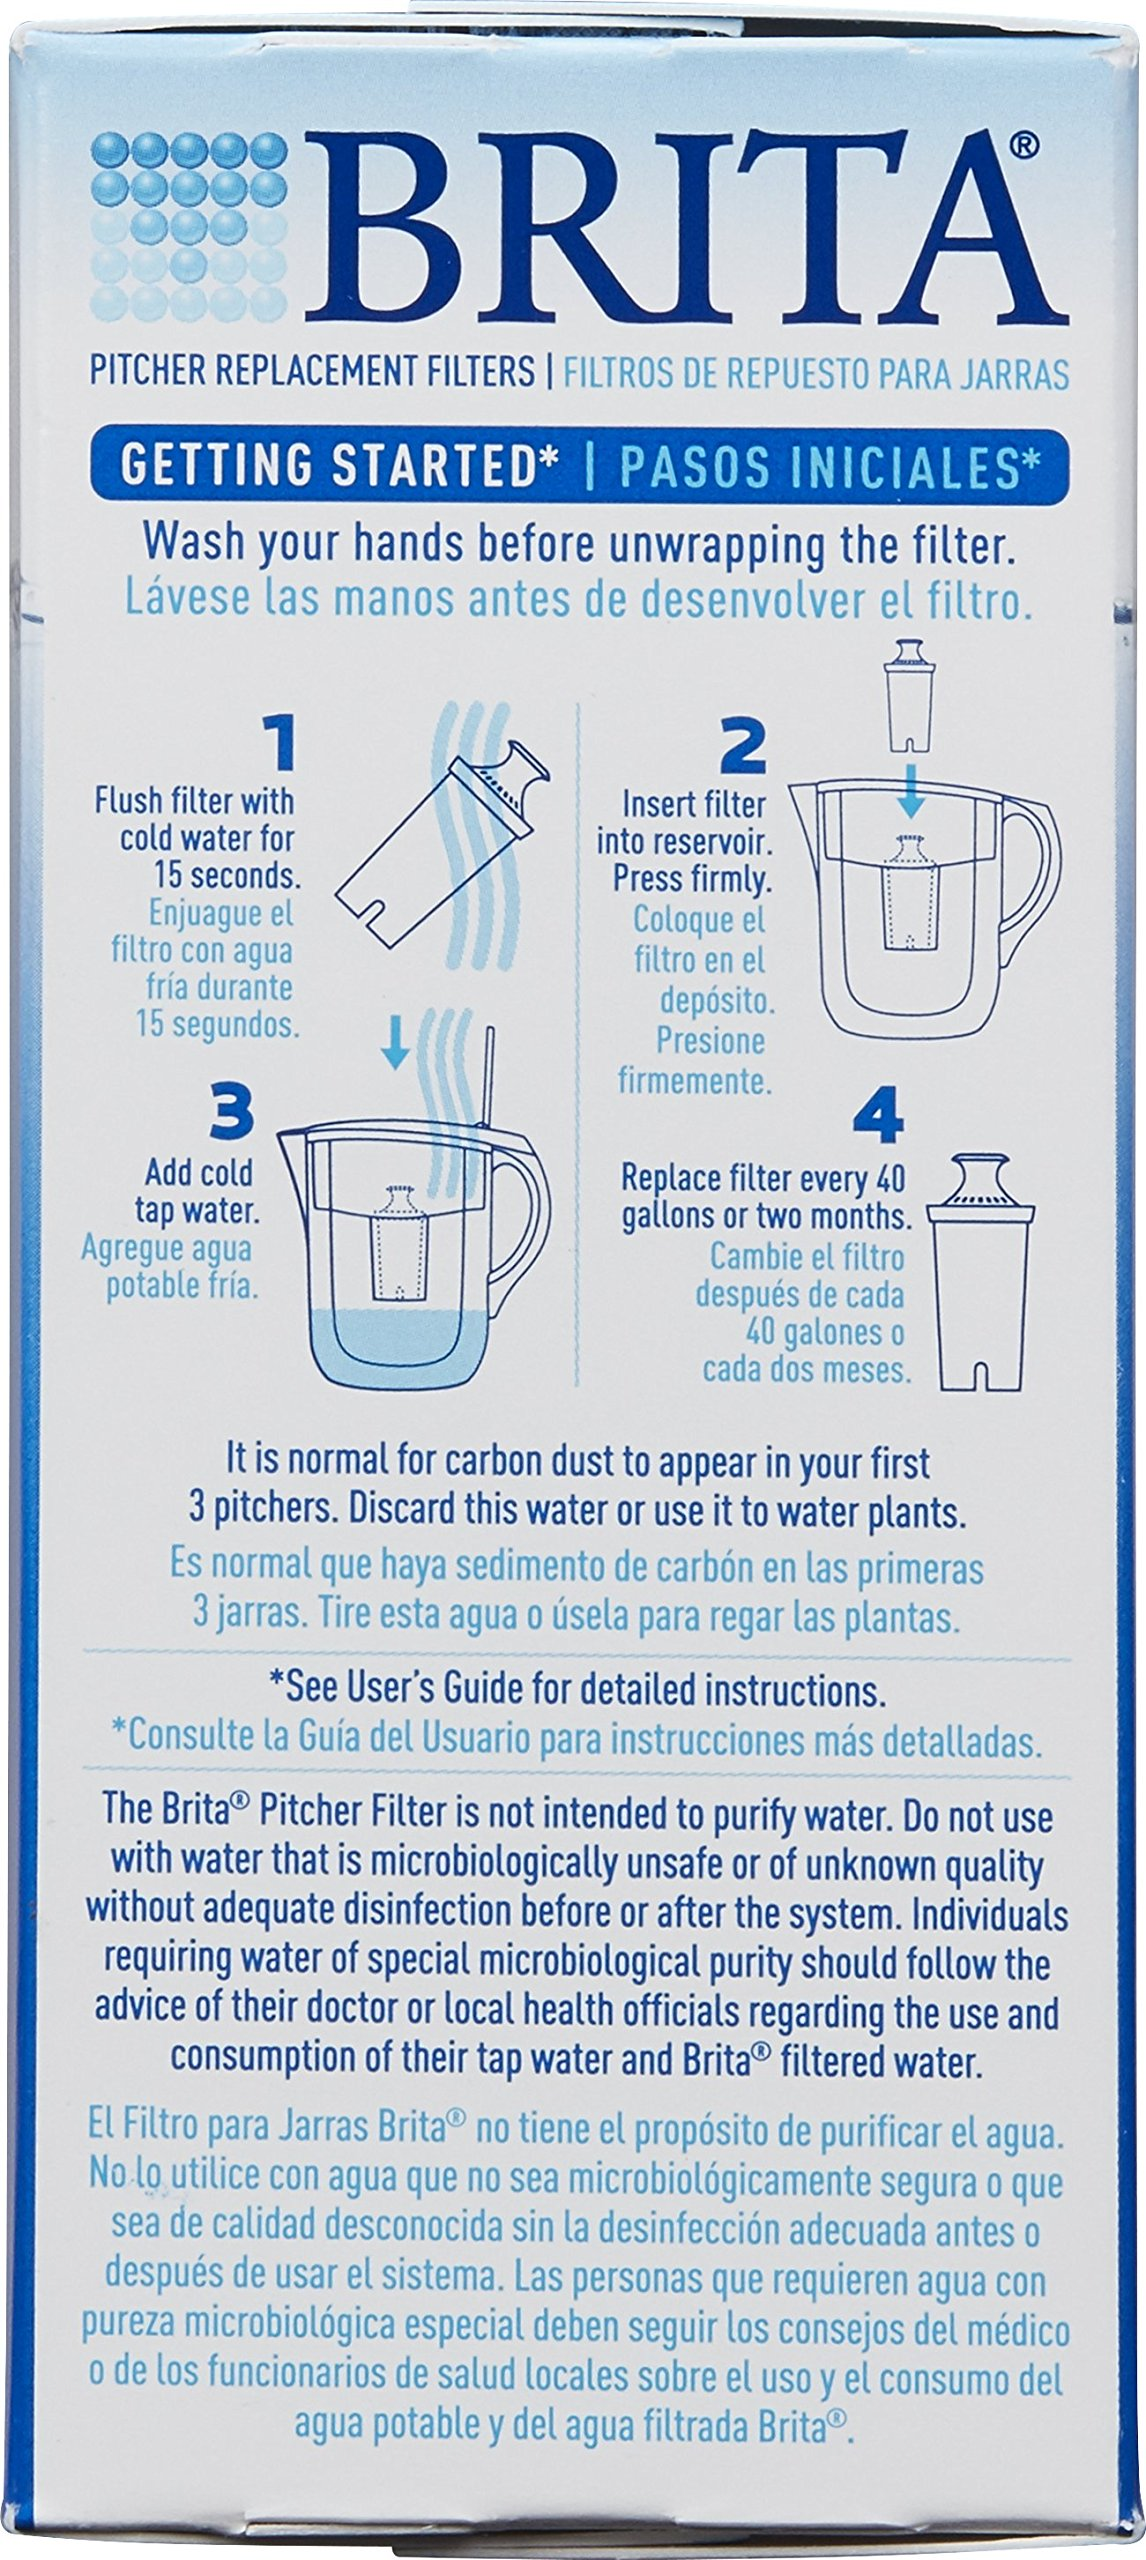 Brita Standard Replacement Filters for Pitchers and Dispensers - BPA Free - 5 Count by Brita (Image #6)